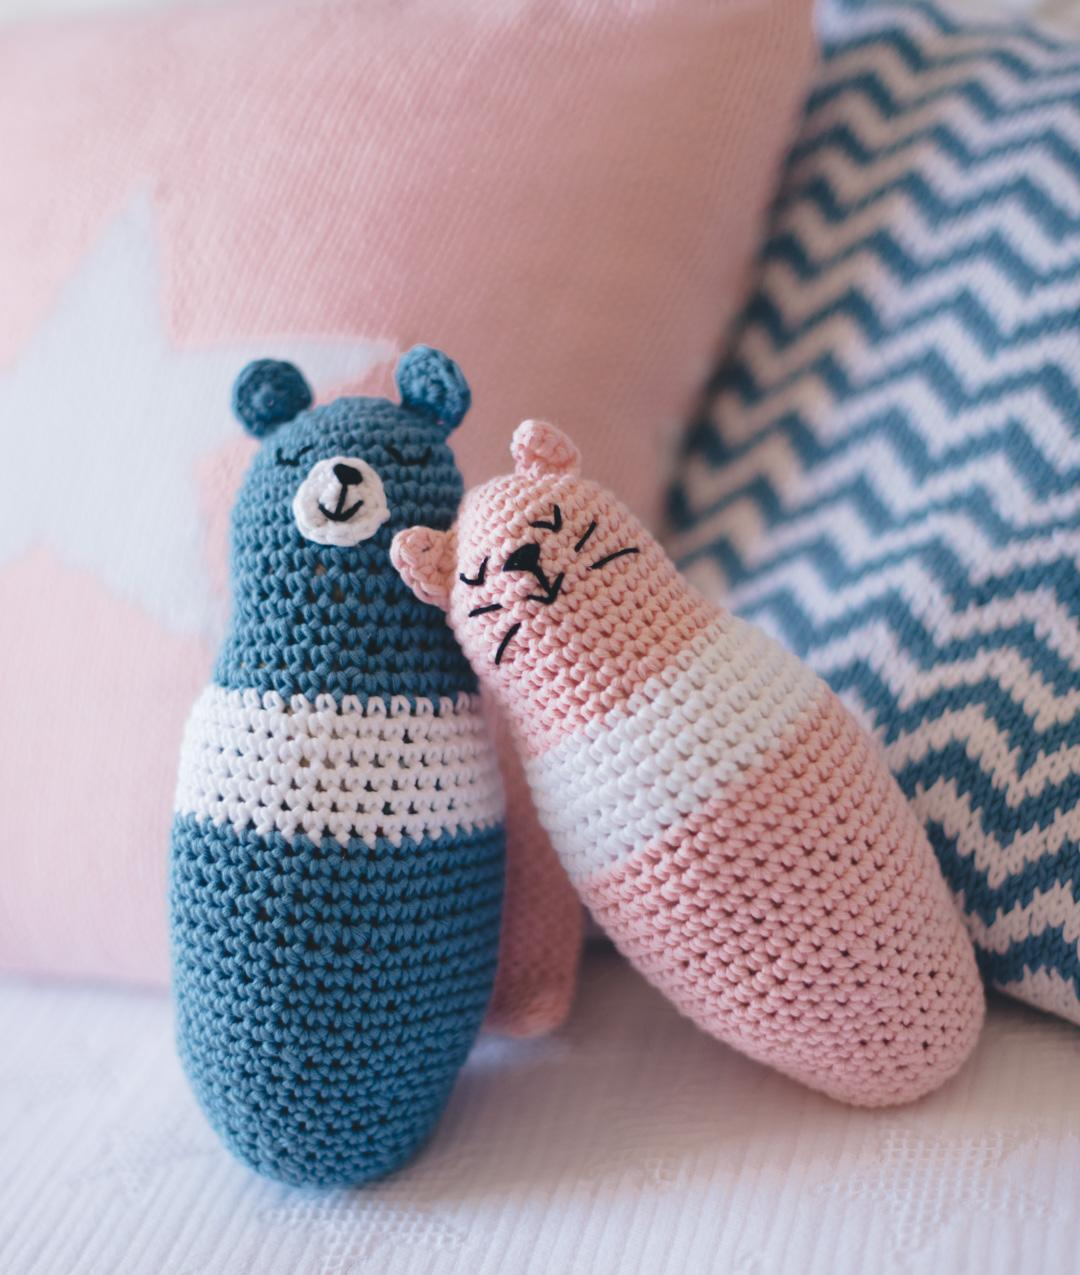 Collezione Home Decor Baby - Casa - TEDDY & KITTY AMIGURUMIS - 1